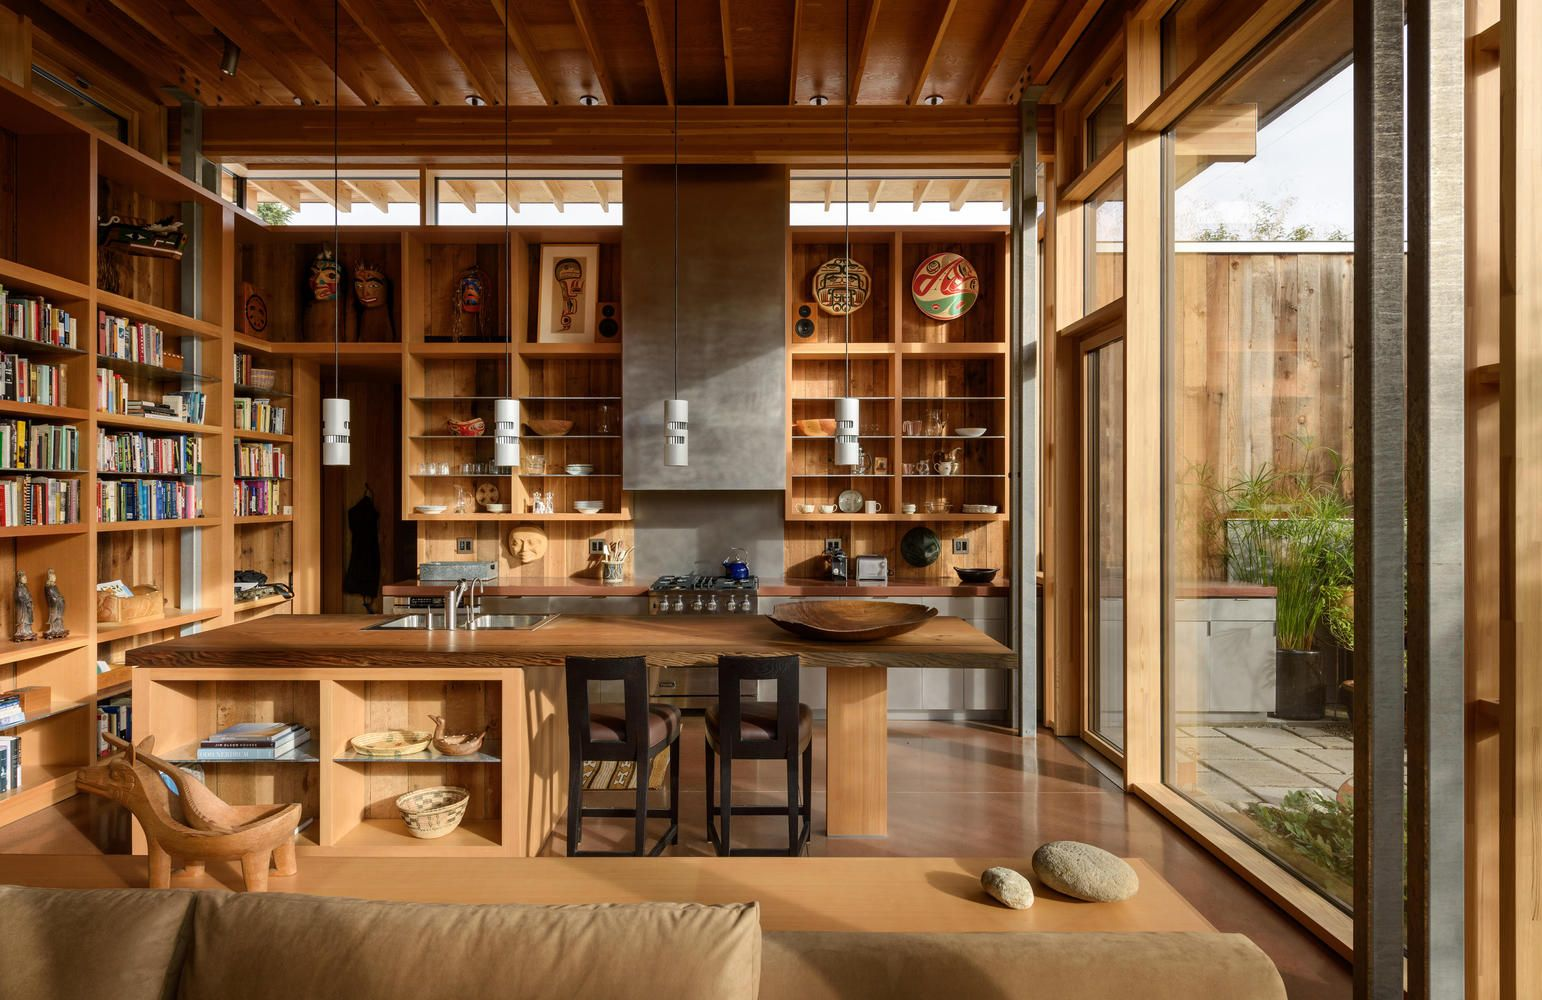 Gallery Of City Cabin Olson Kundig 12 Home Home Decor Kitchen House